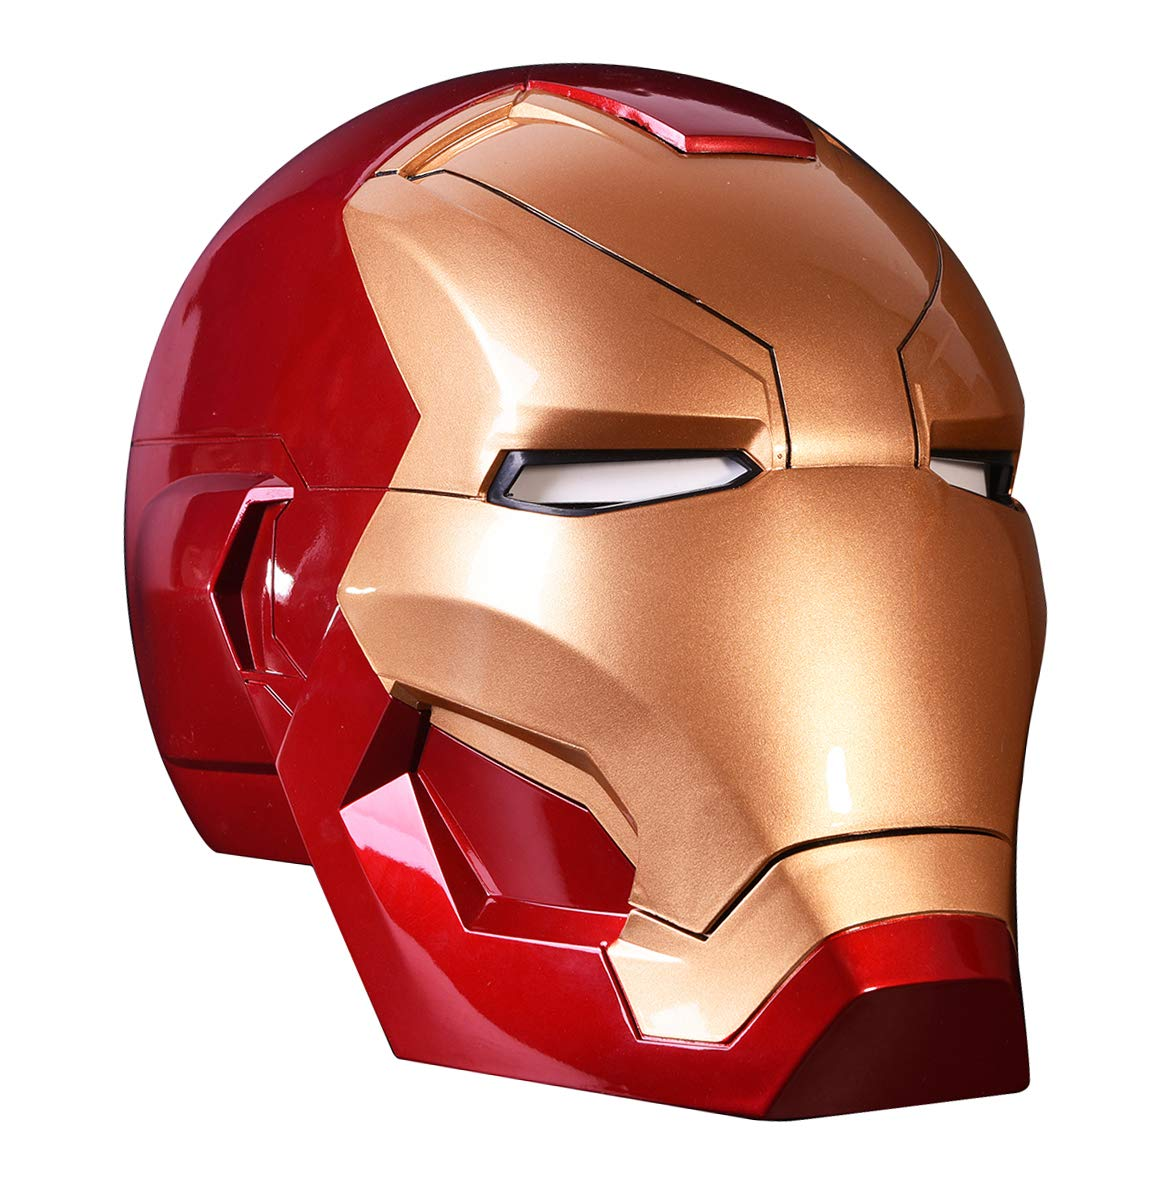 Gmasking Manual Open/Close MK46 Wearable Helmet 1:1 Props Replica Red